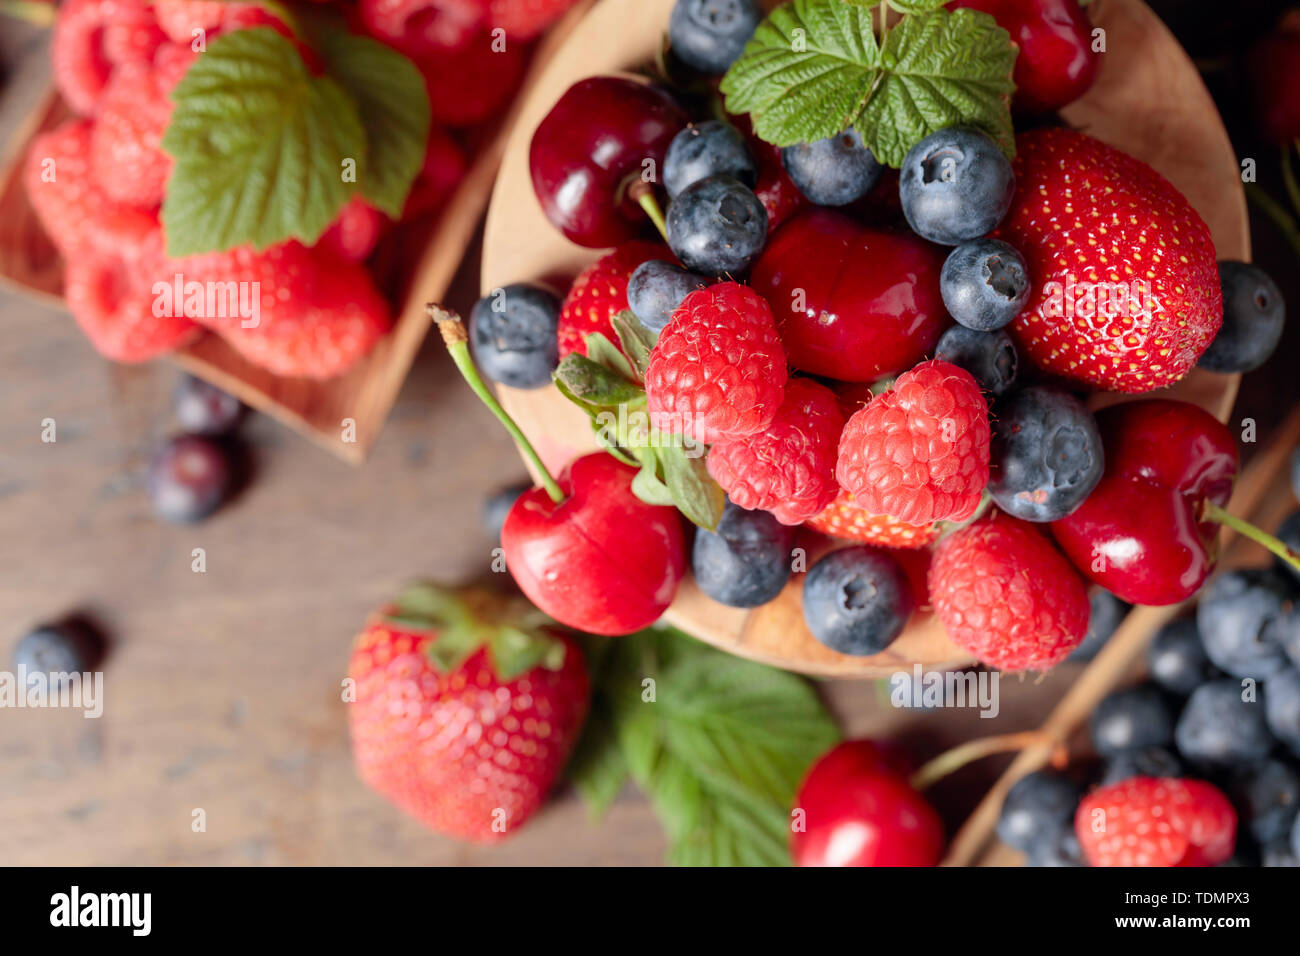 Berries closeup colorful assorted mix of strawberry, blueberry, raspberry and sweet cherry on a old wooden table in garden. Top view. - Stock Image